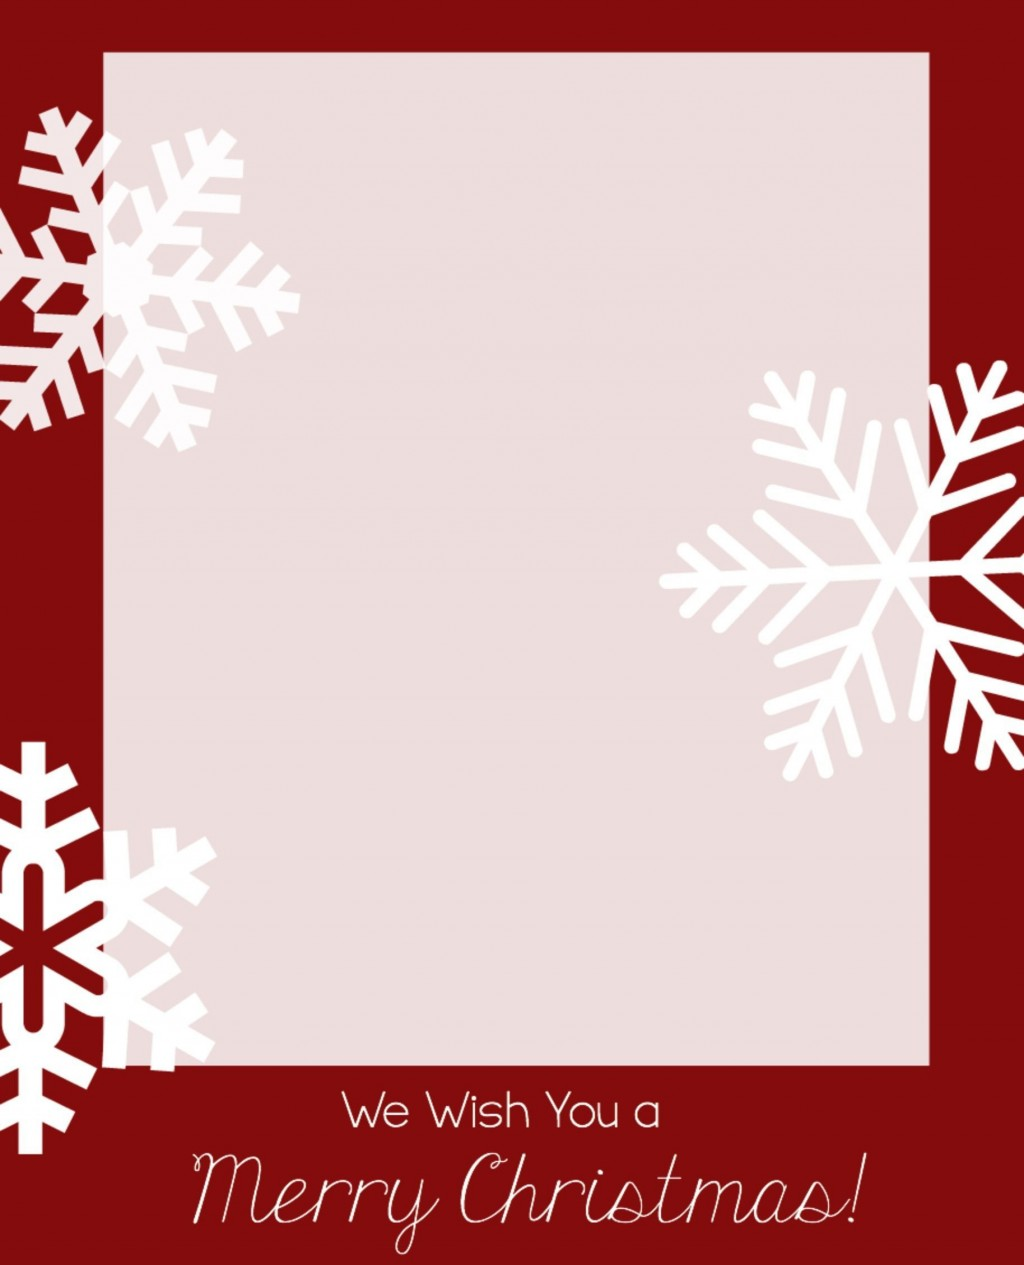 003 Incredible Free Holiday Card Template Concept  Templates Printable Photo For WordLarge